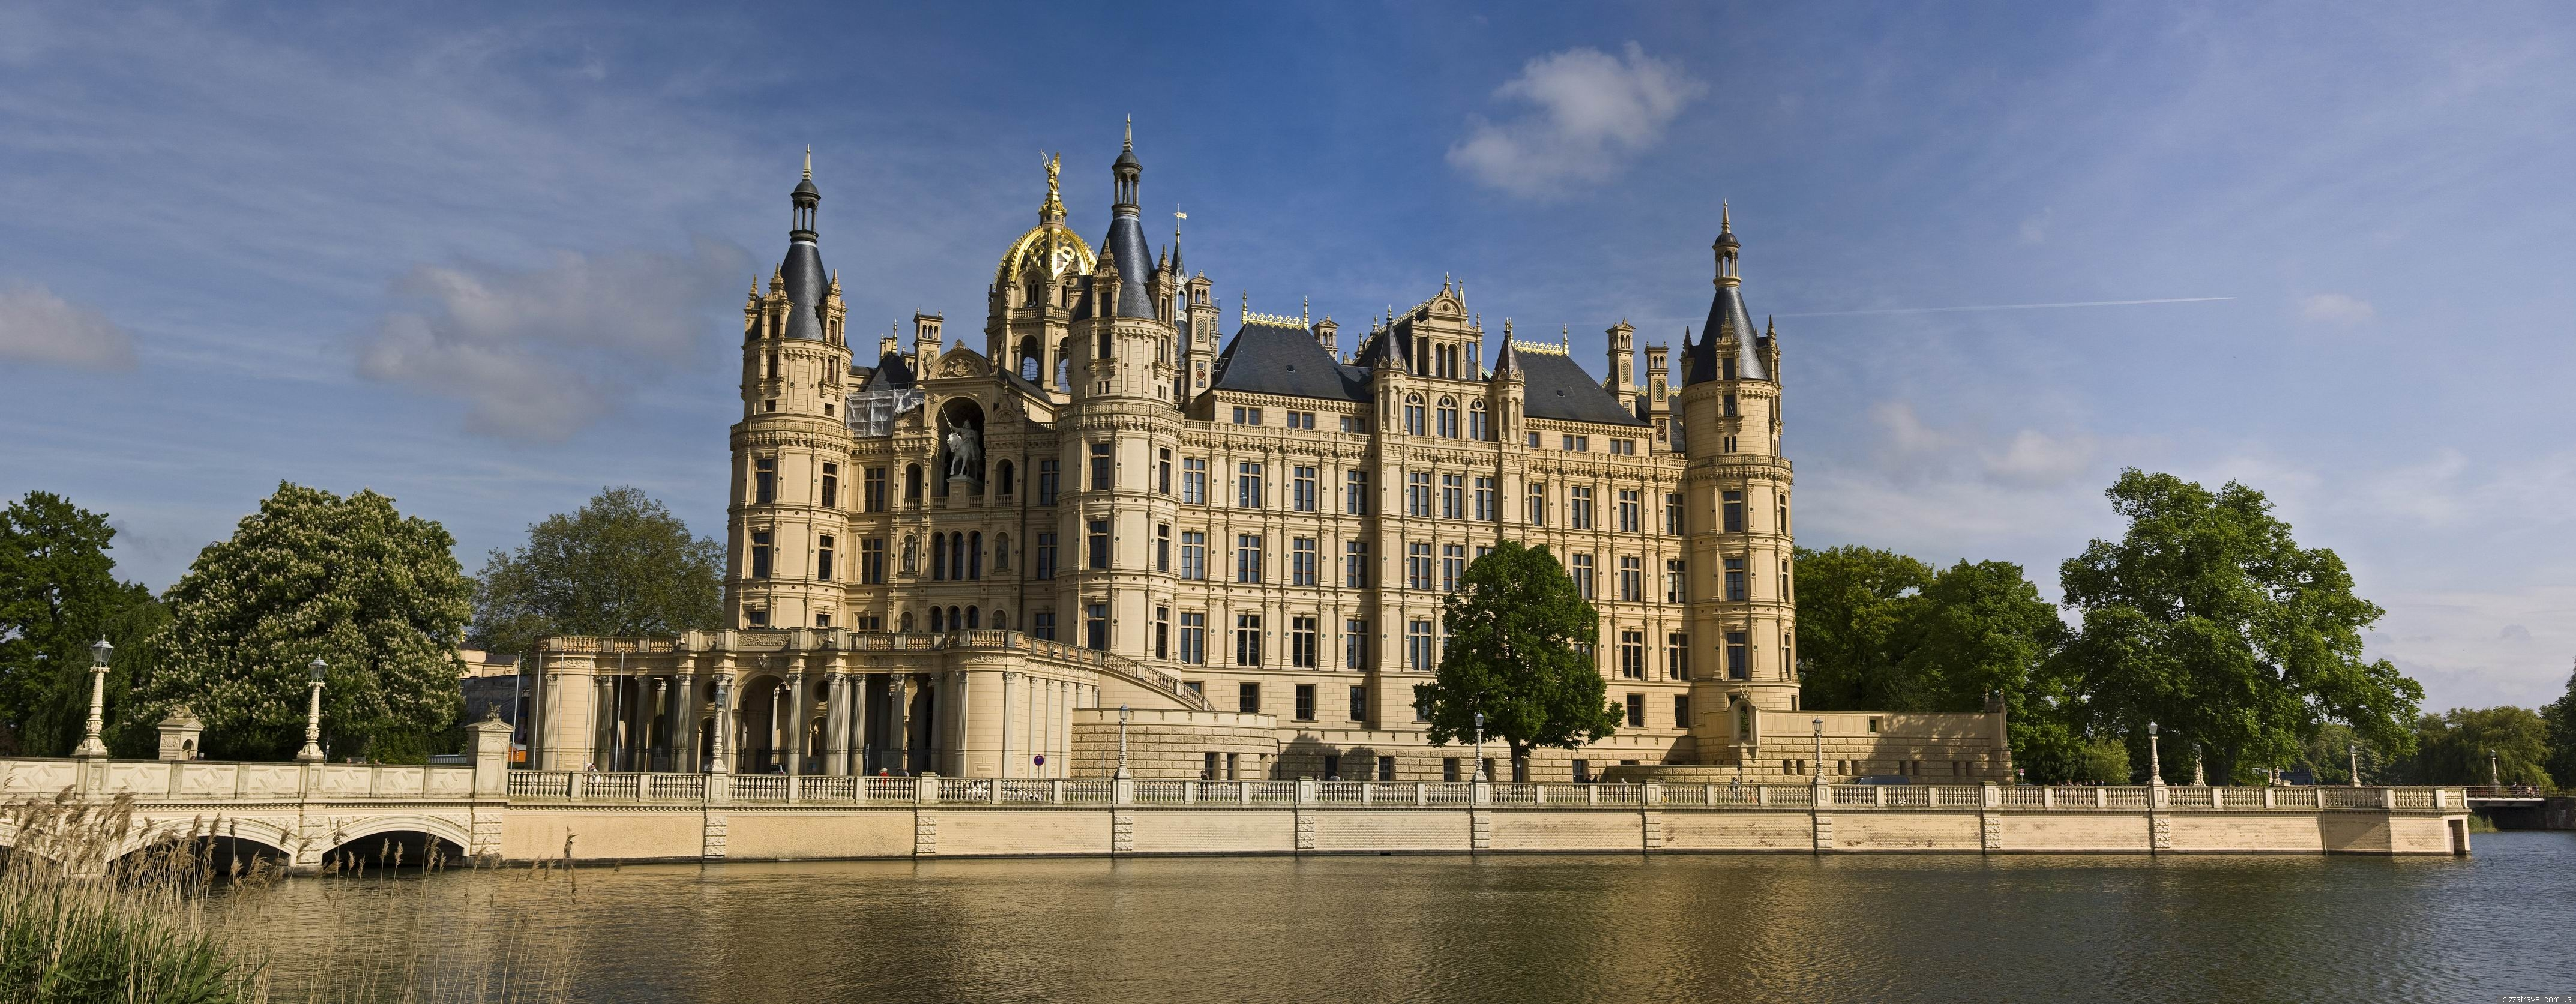 Schwerin_castle on Boat Houses On Lake